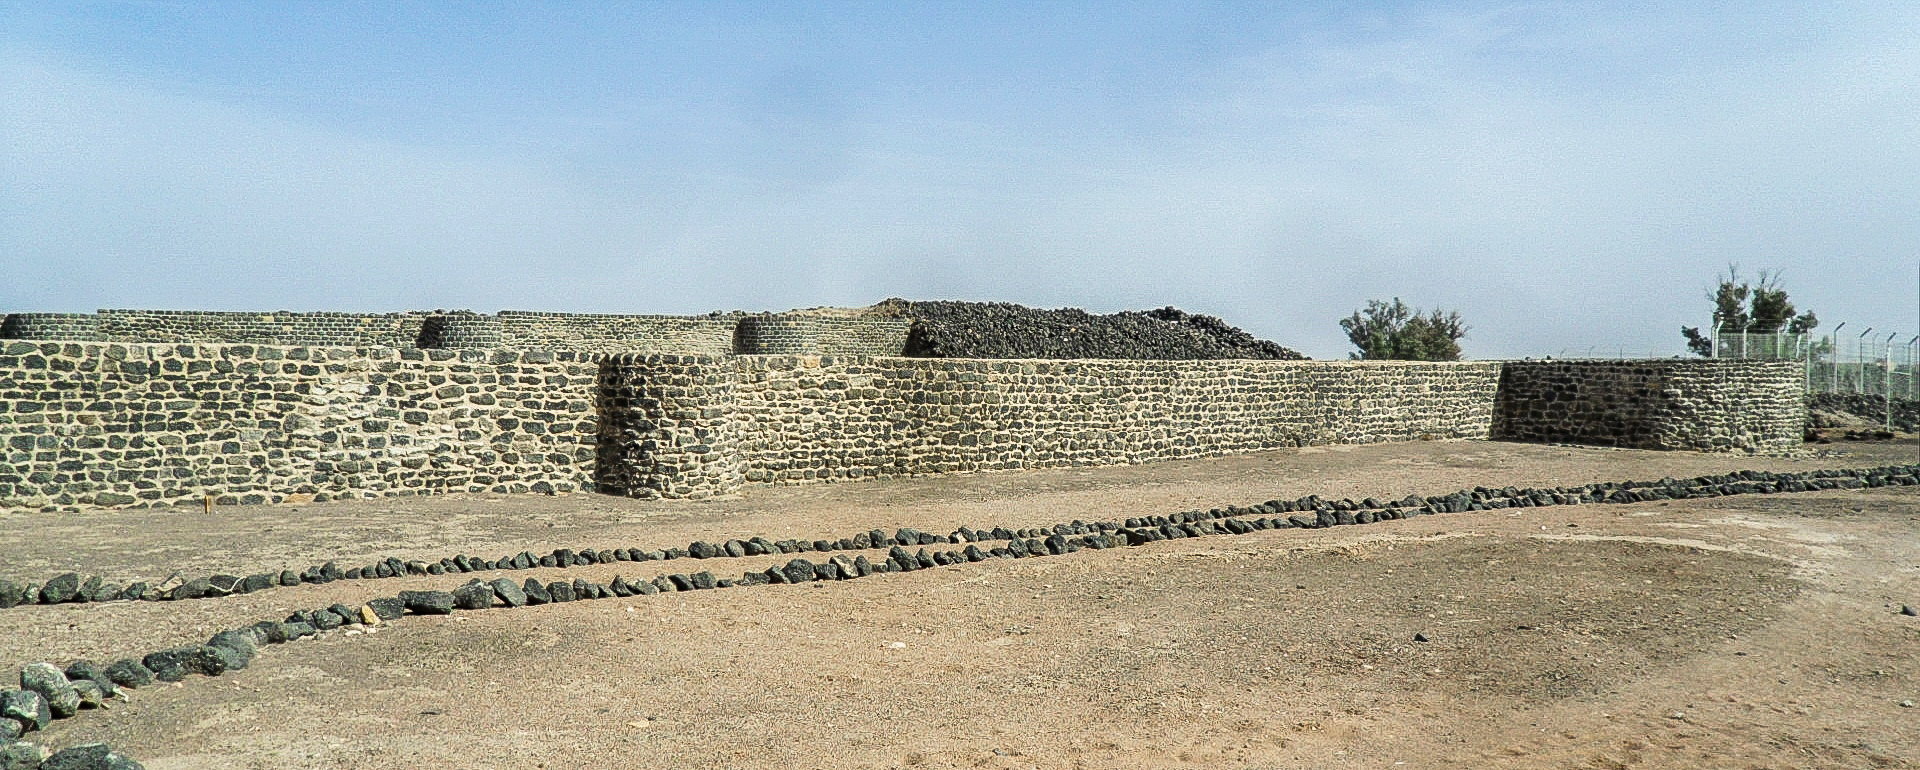 The two compound walls of the Citadel Fayd Citadel (photo: Florent Egal)